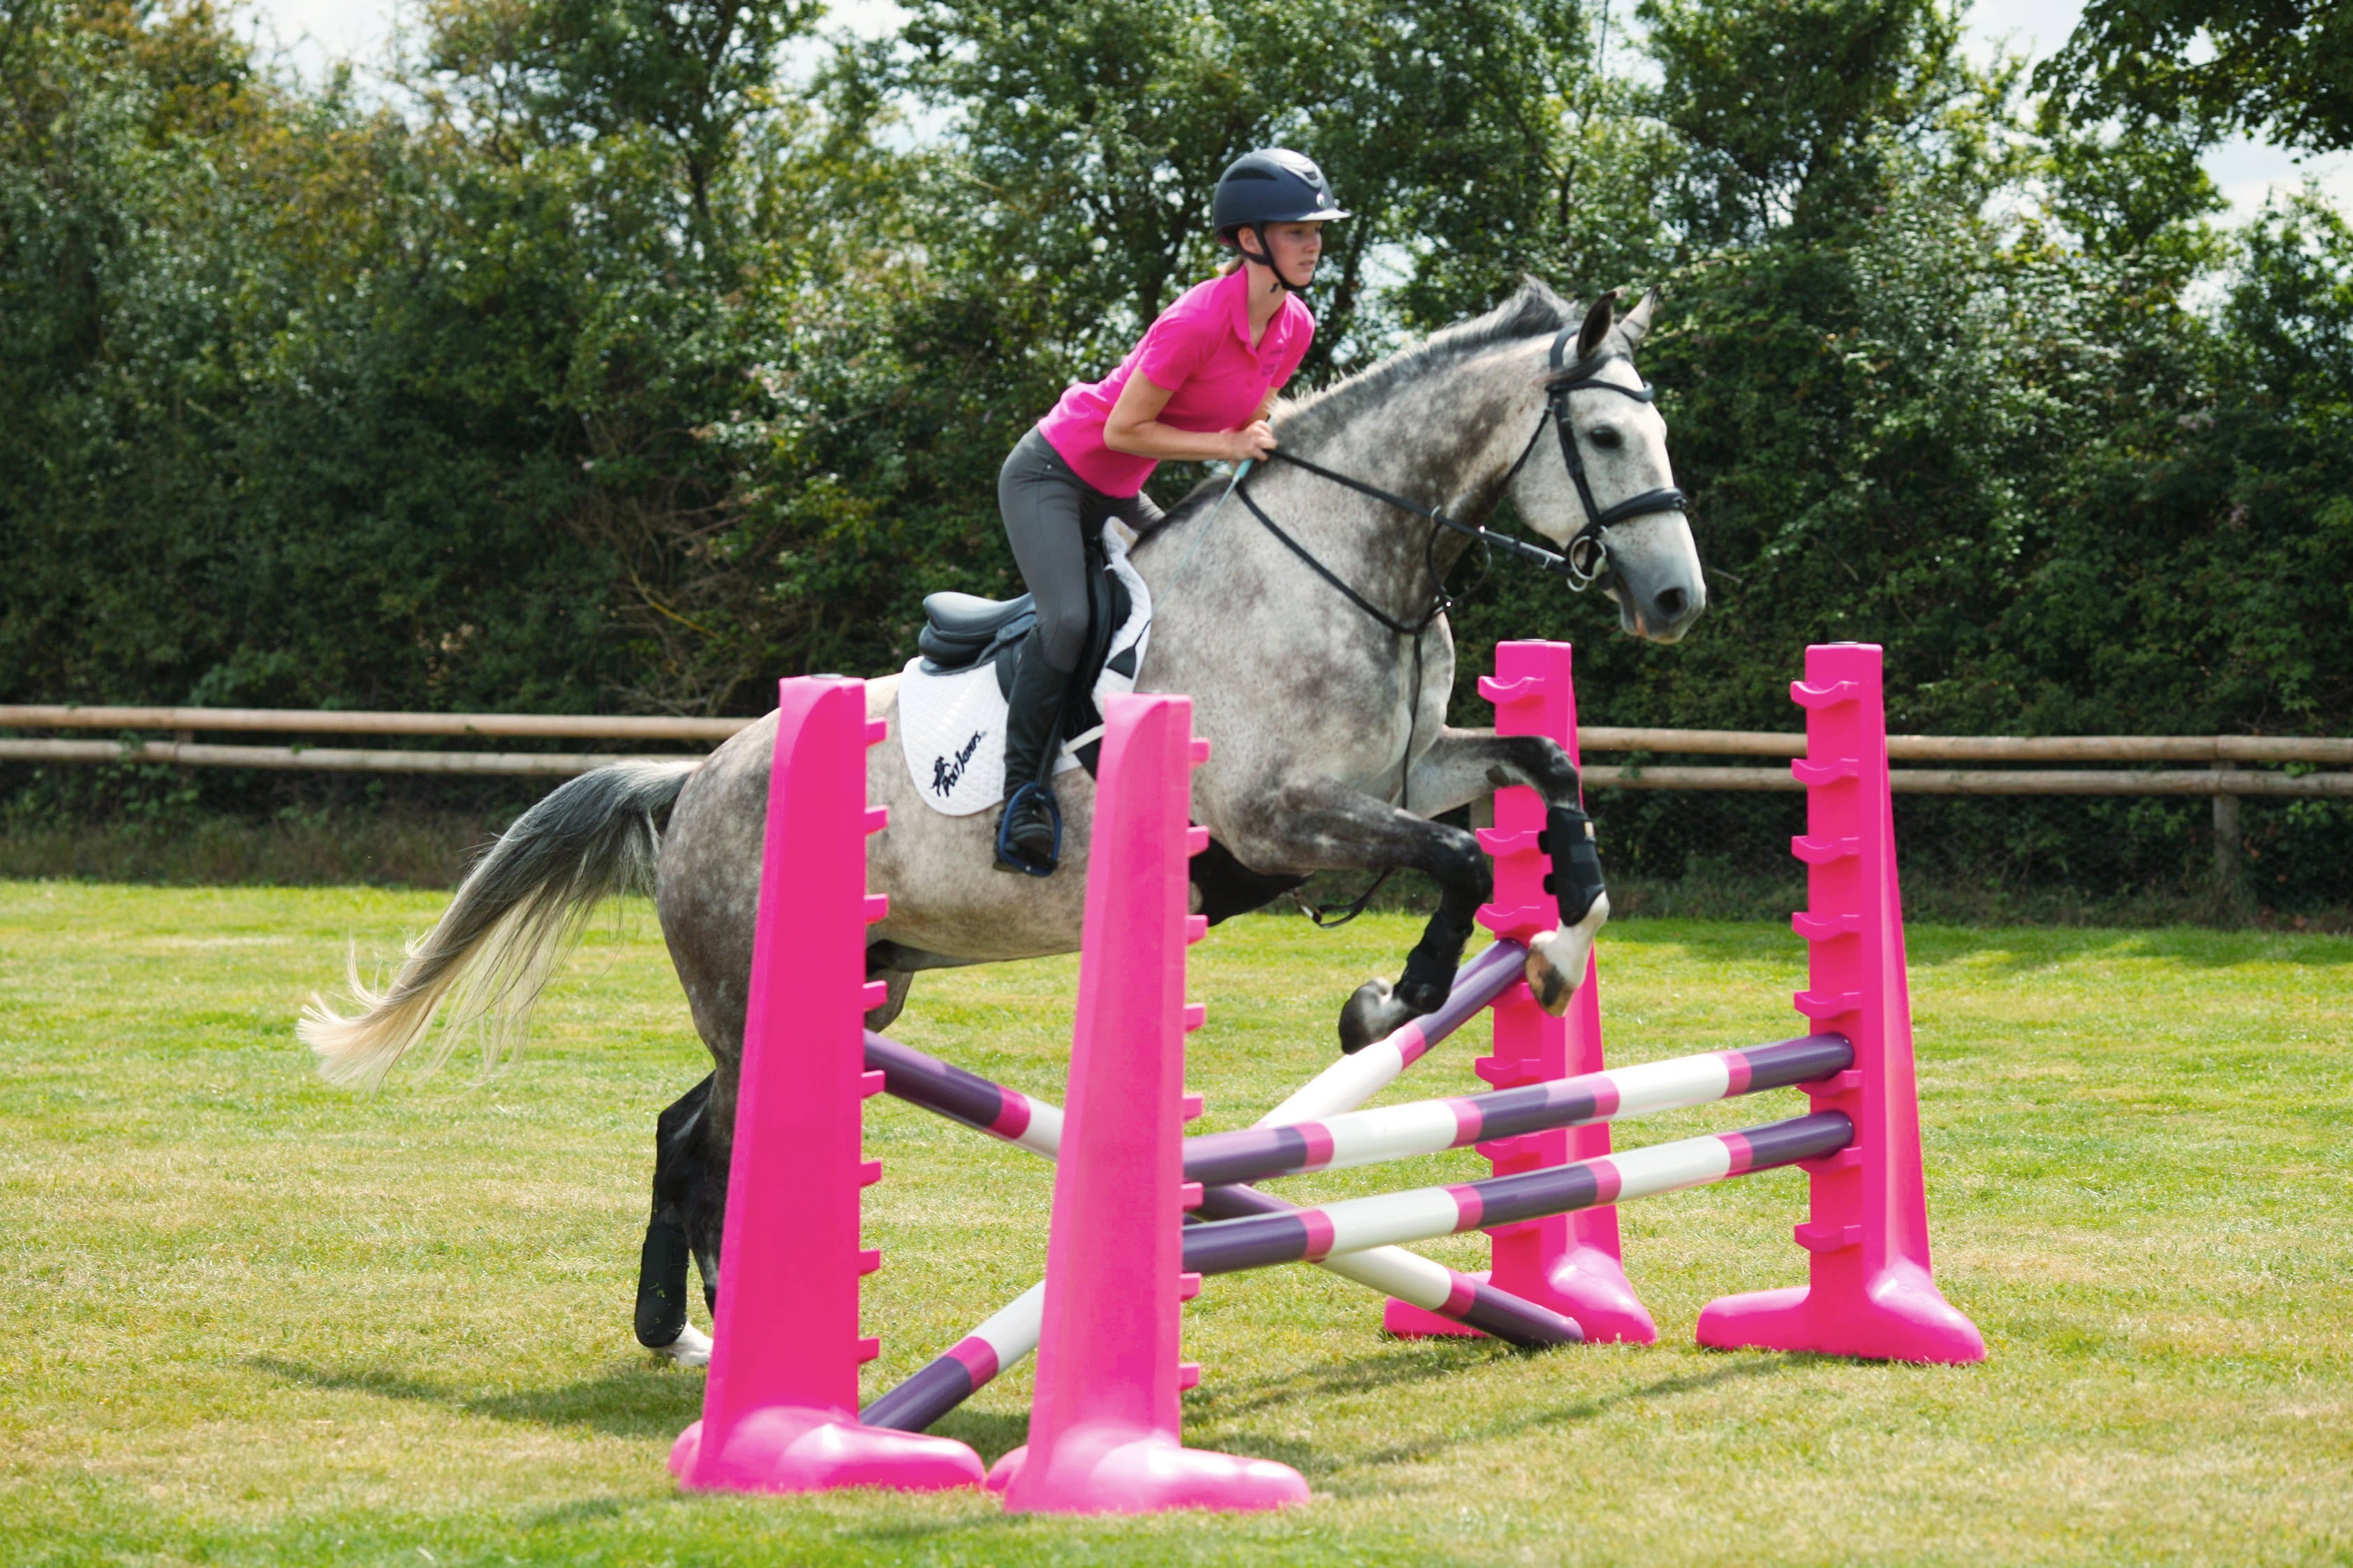 Horse jumping over 2 fences made up of 2 pairs of pink 8 cups with 3 poles.